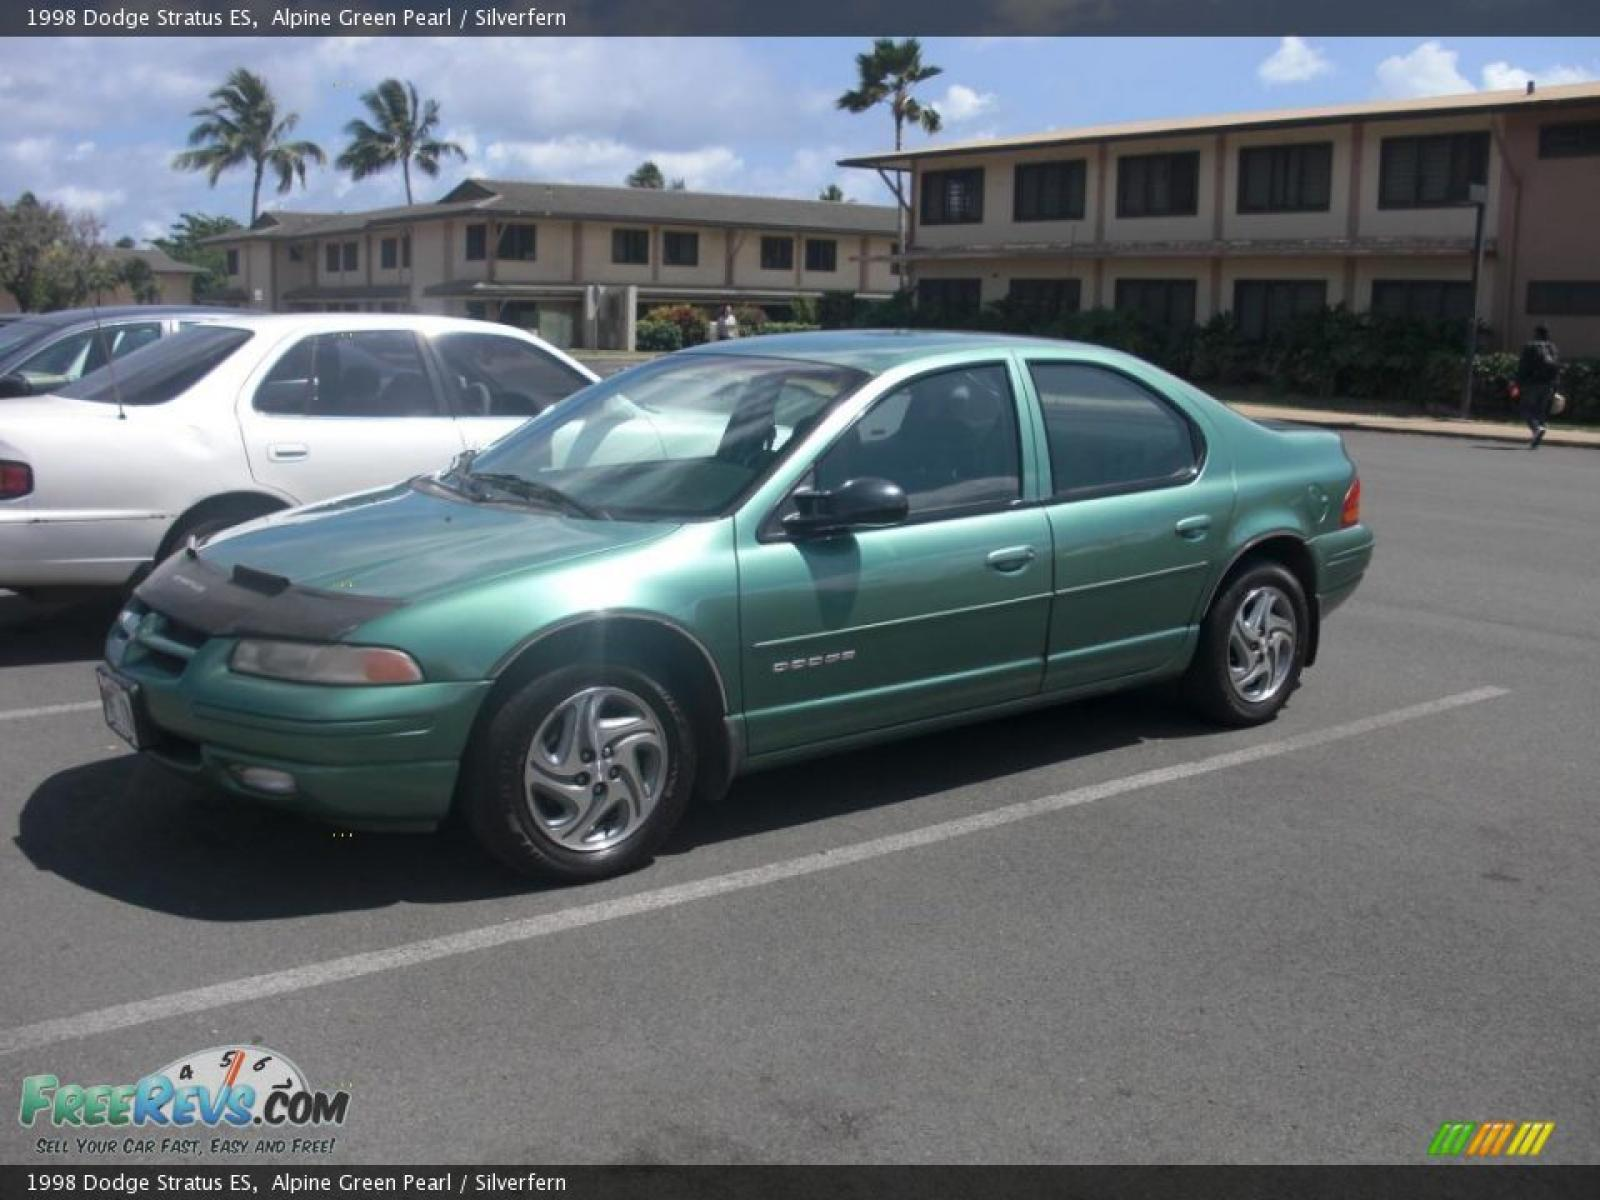 1998 Dodge Stratus Information And Photos Zombiedrive Wiring Diagram For 1999 Plymouth Breeze 800 1024 1280 1600 Origin